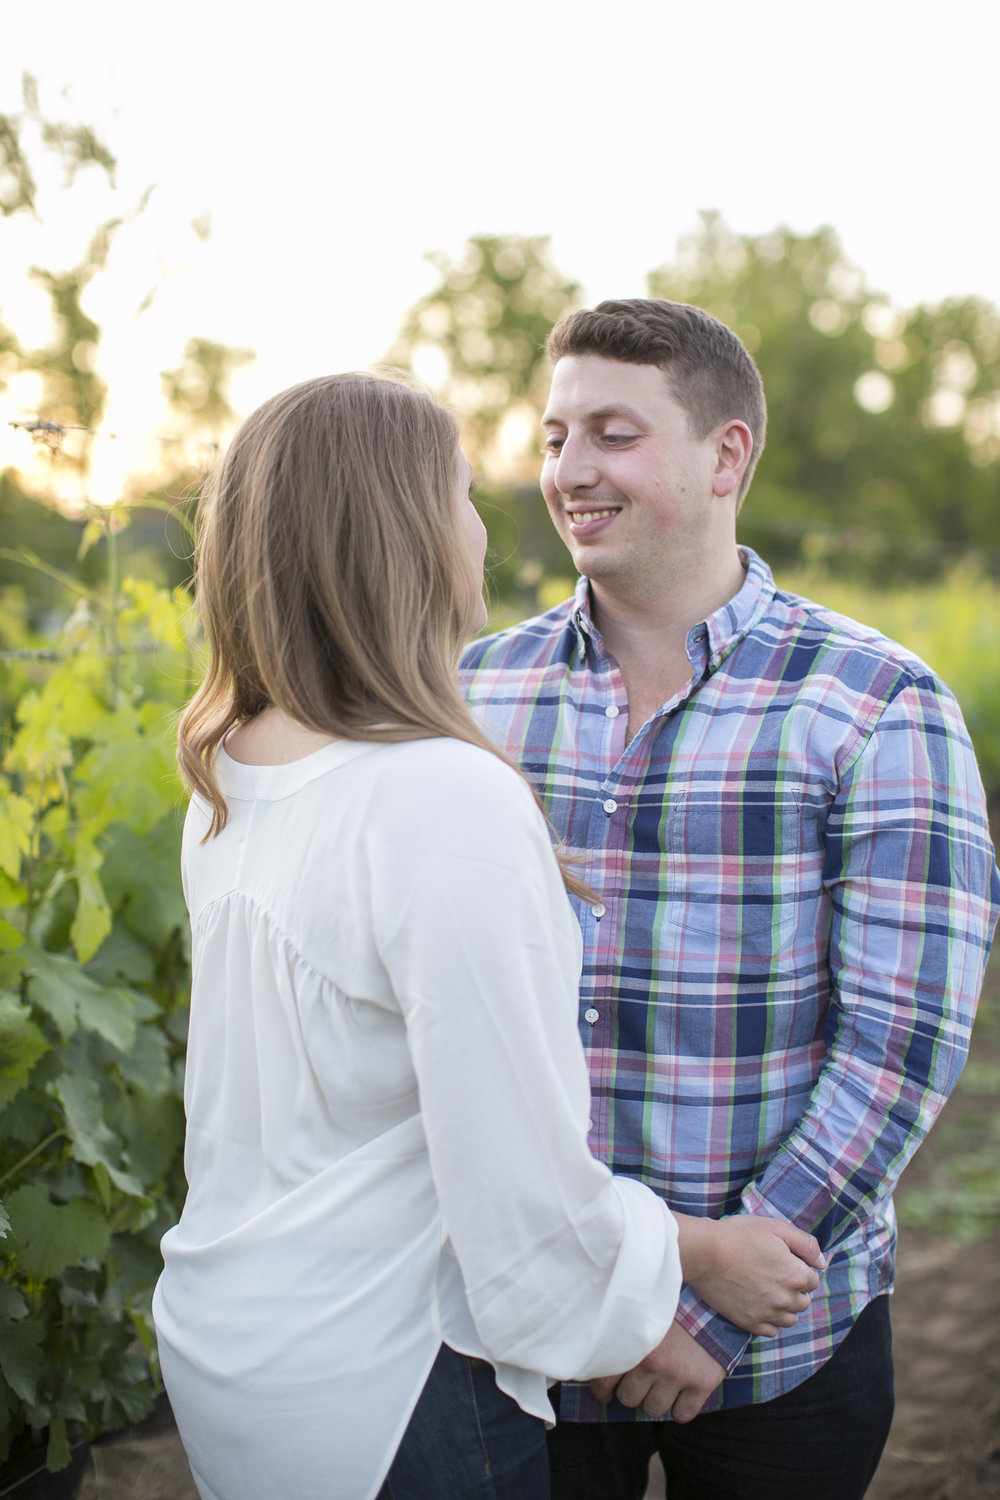 Niagara-on-the-Lake-Summer-Engagement-photos-by-Philosophy-Studios020.JPG